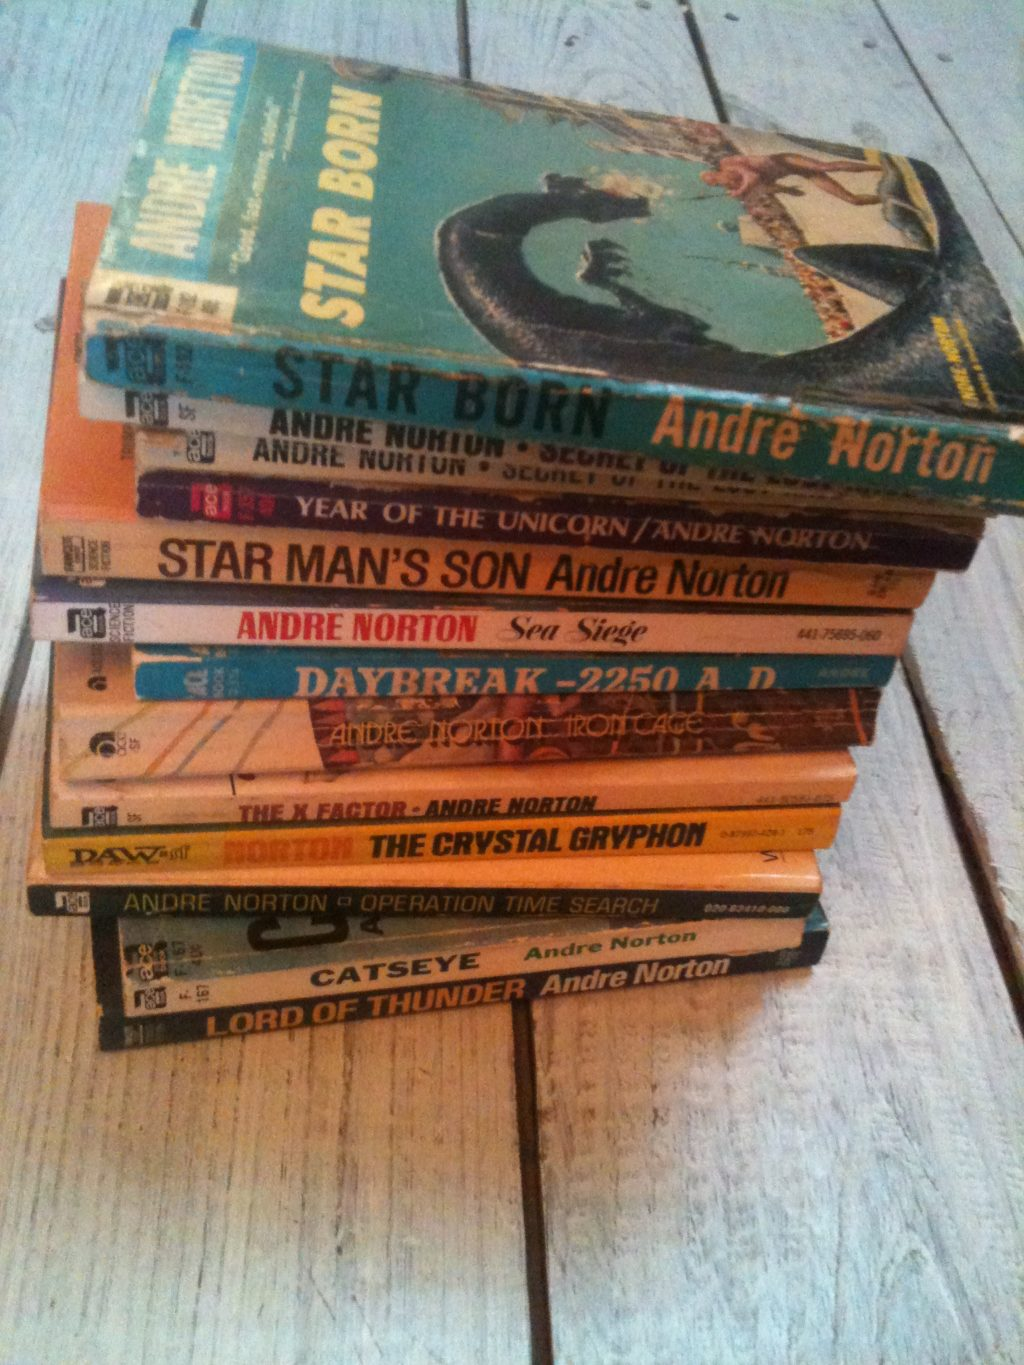 Old Sci Fi Books are Great Gifts!